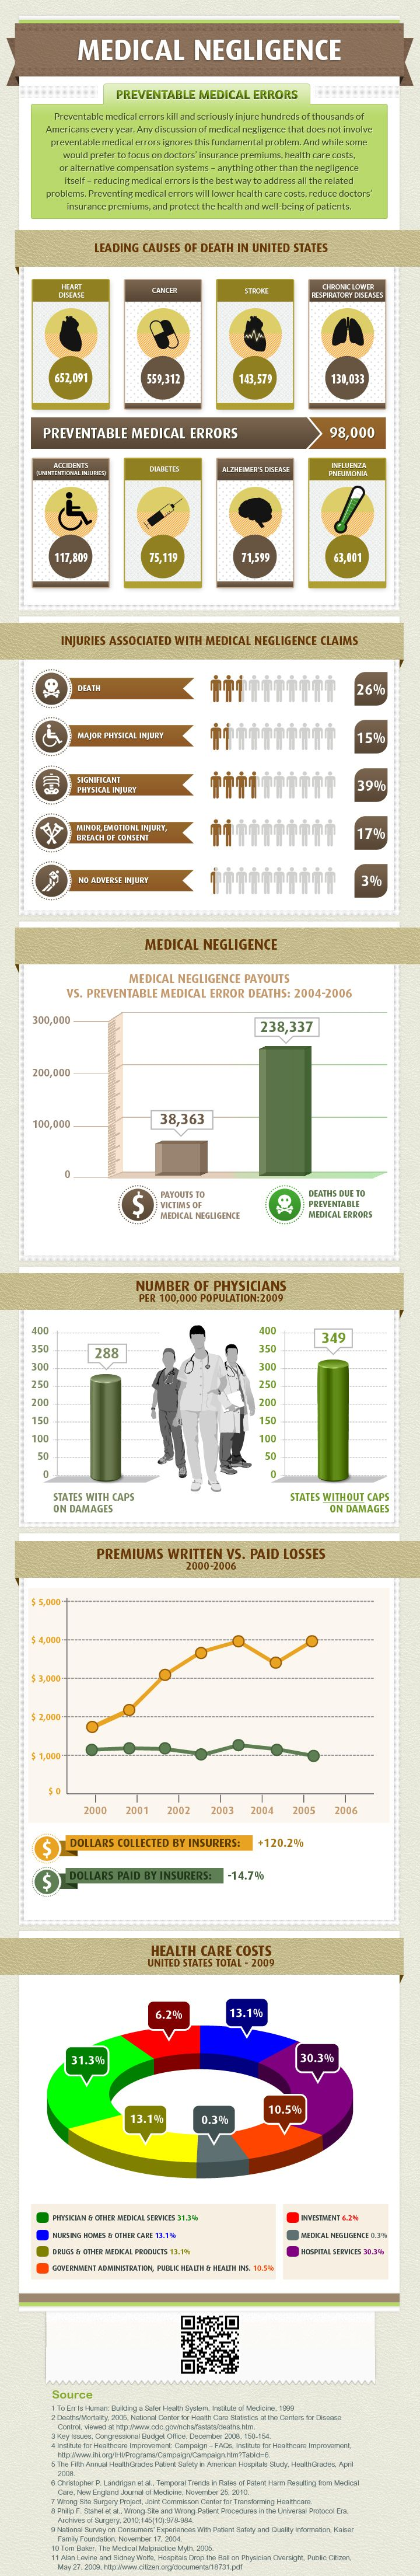 The Cost of Medical Negligence Infographic >> Preventing medical errors will lower health care costs, reduce doctors' insurance premiums, and protect the health and well-being of patients. #healthcare